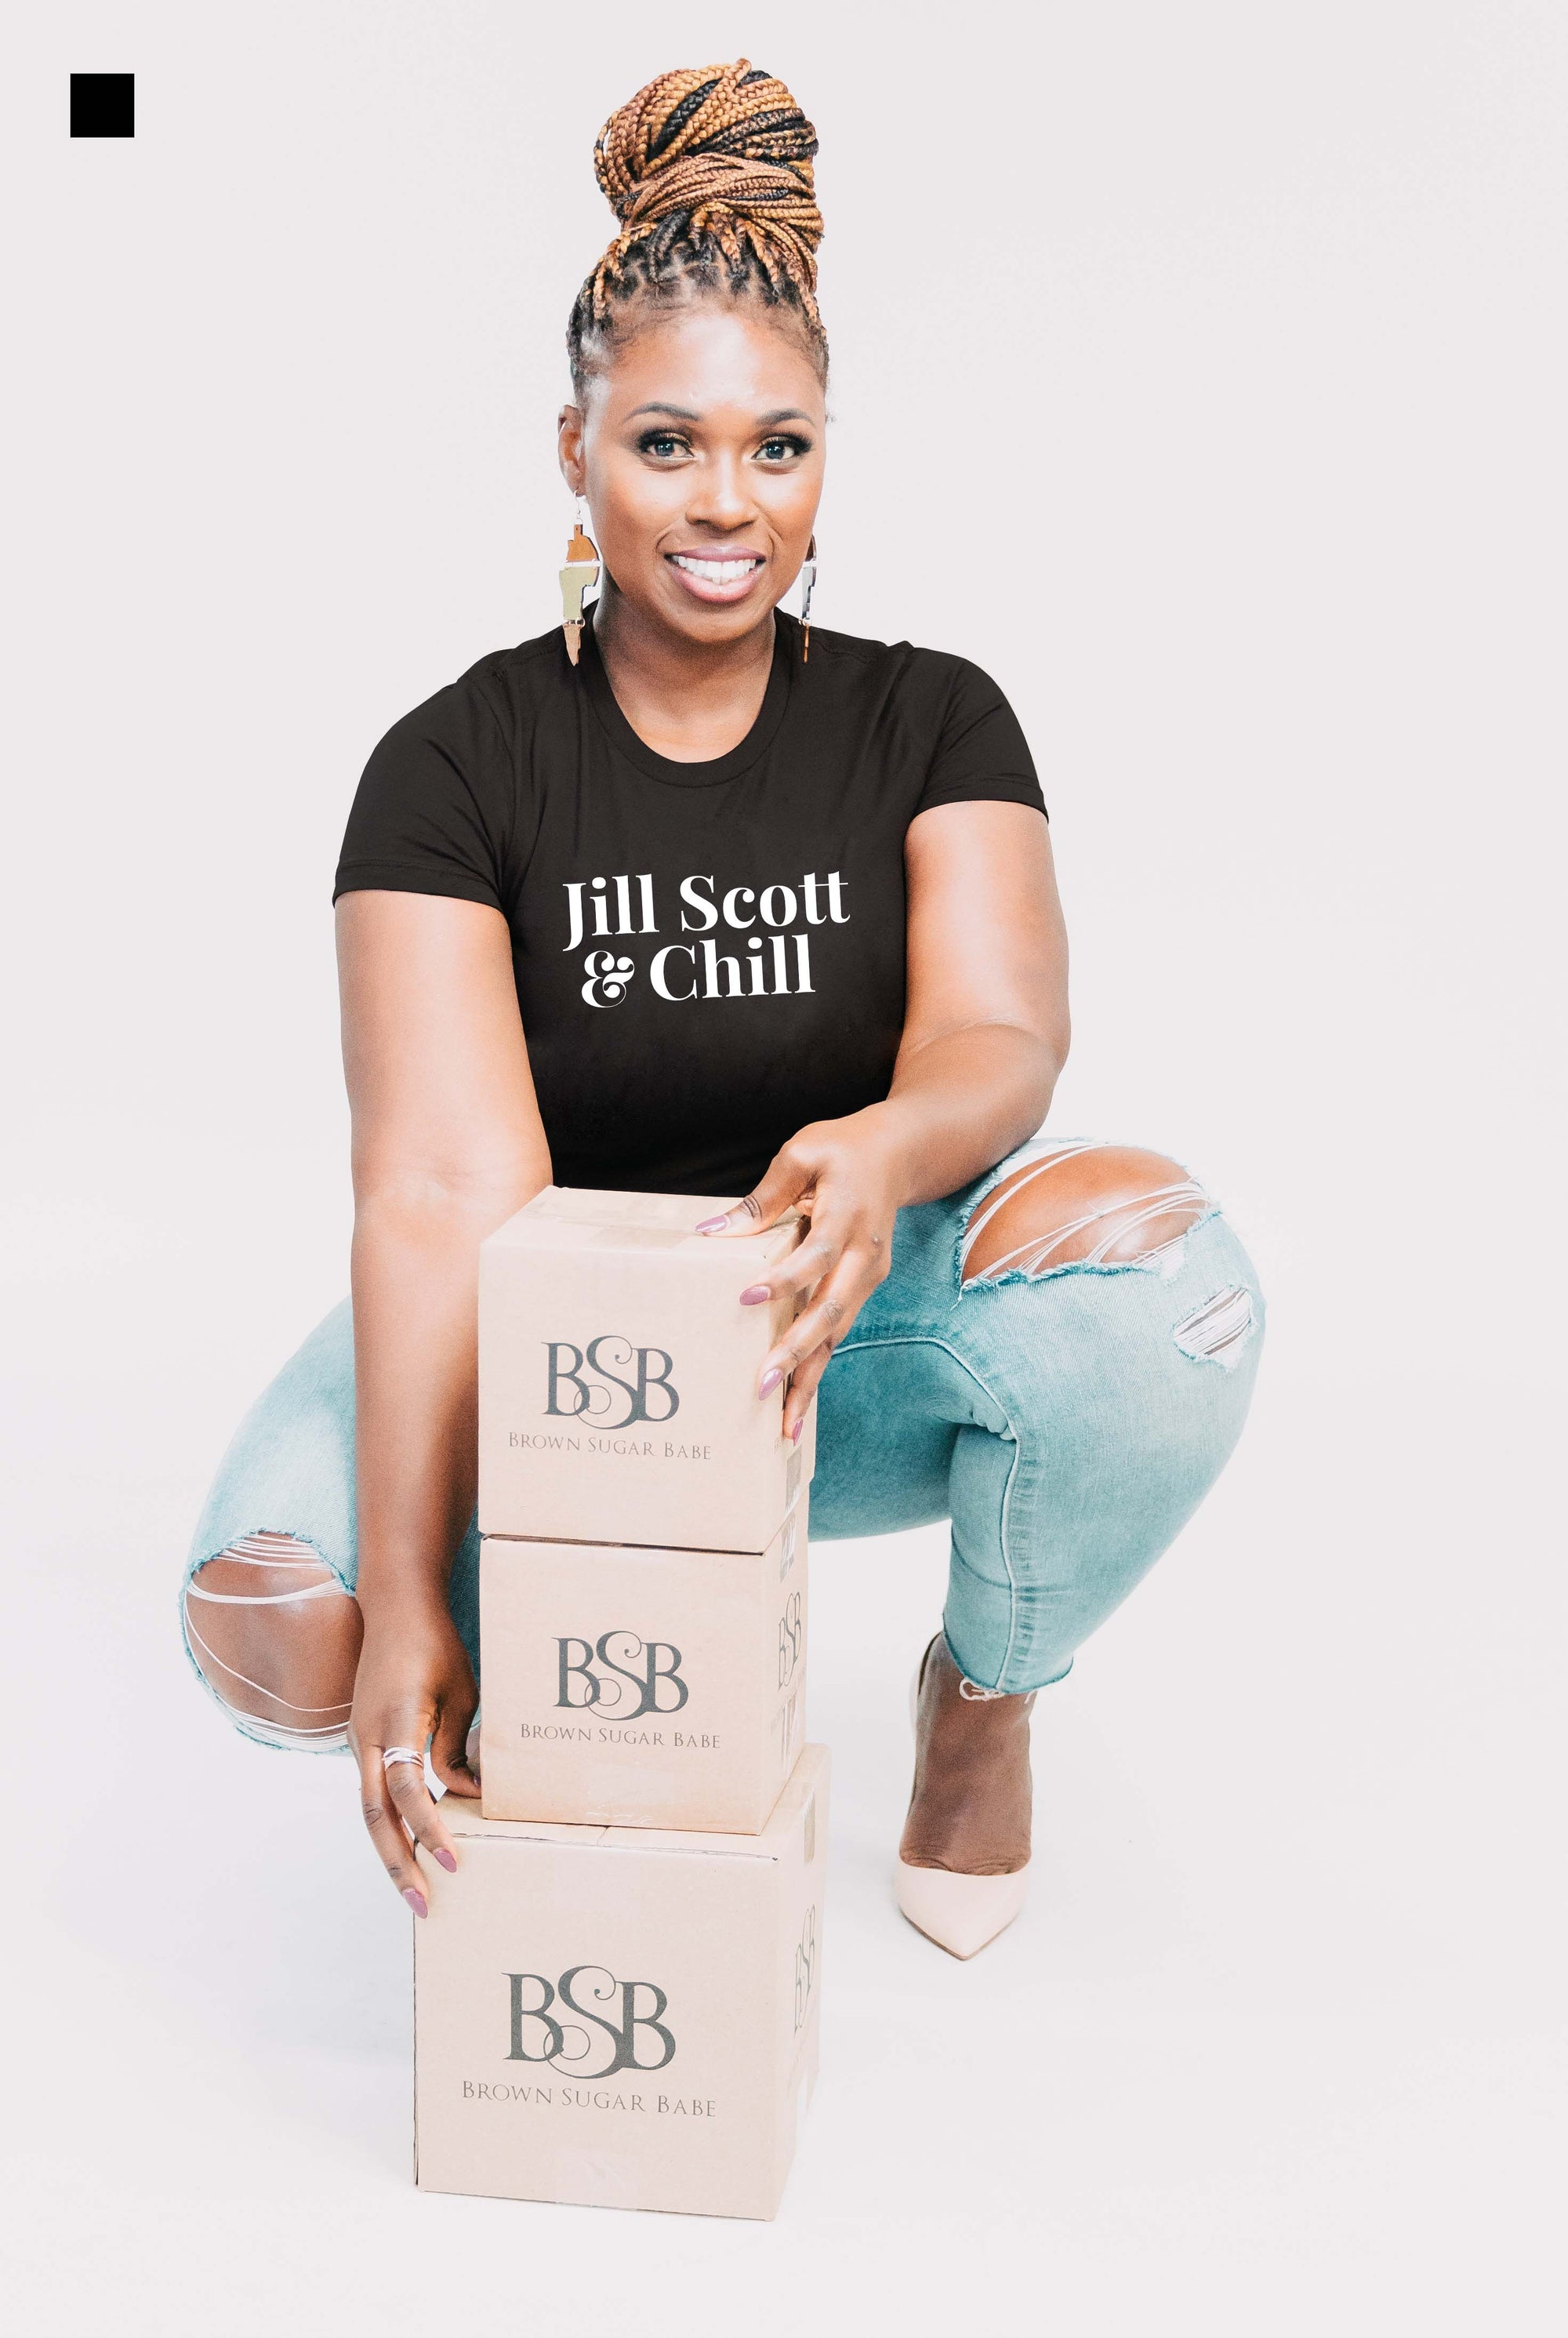 Jill Scott & Chill - Short-Sleeve T-Shirt